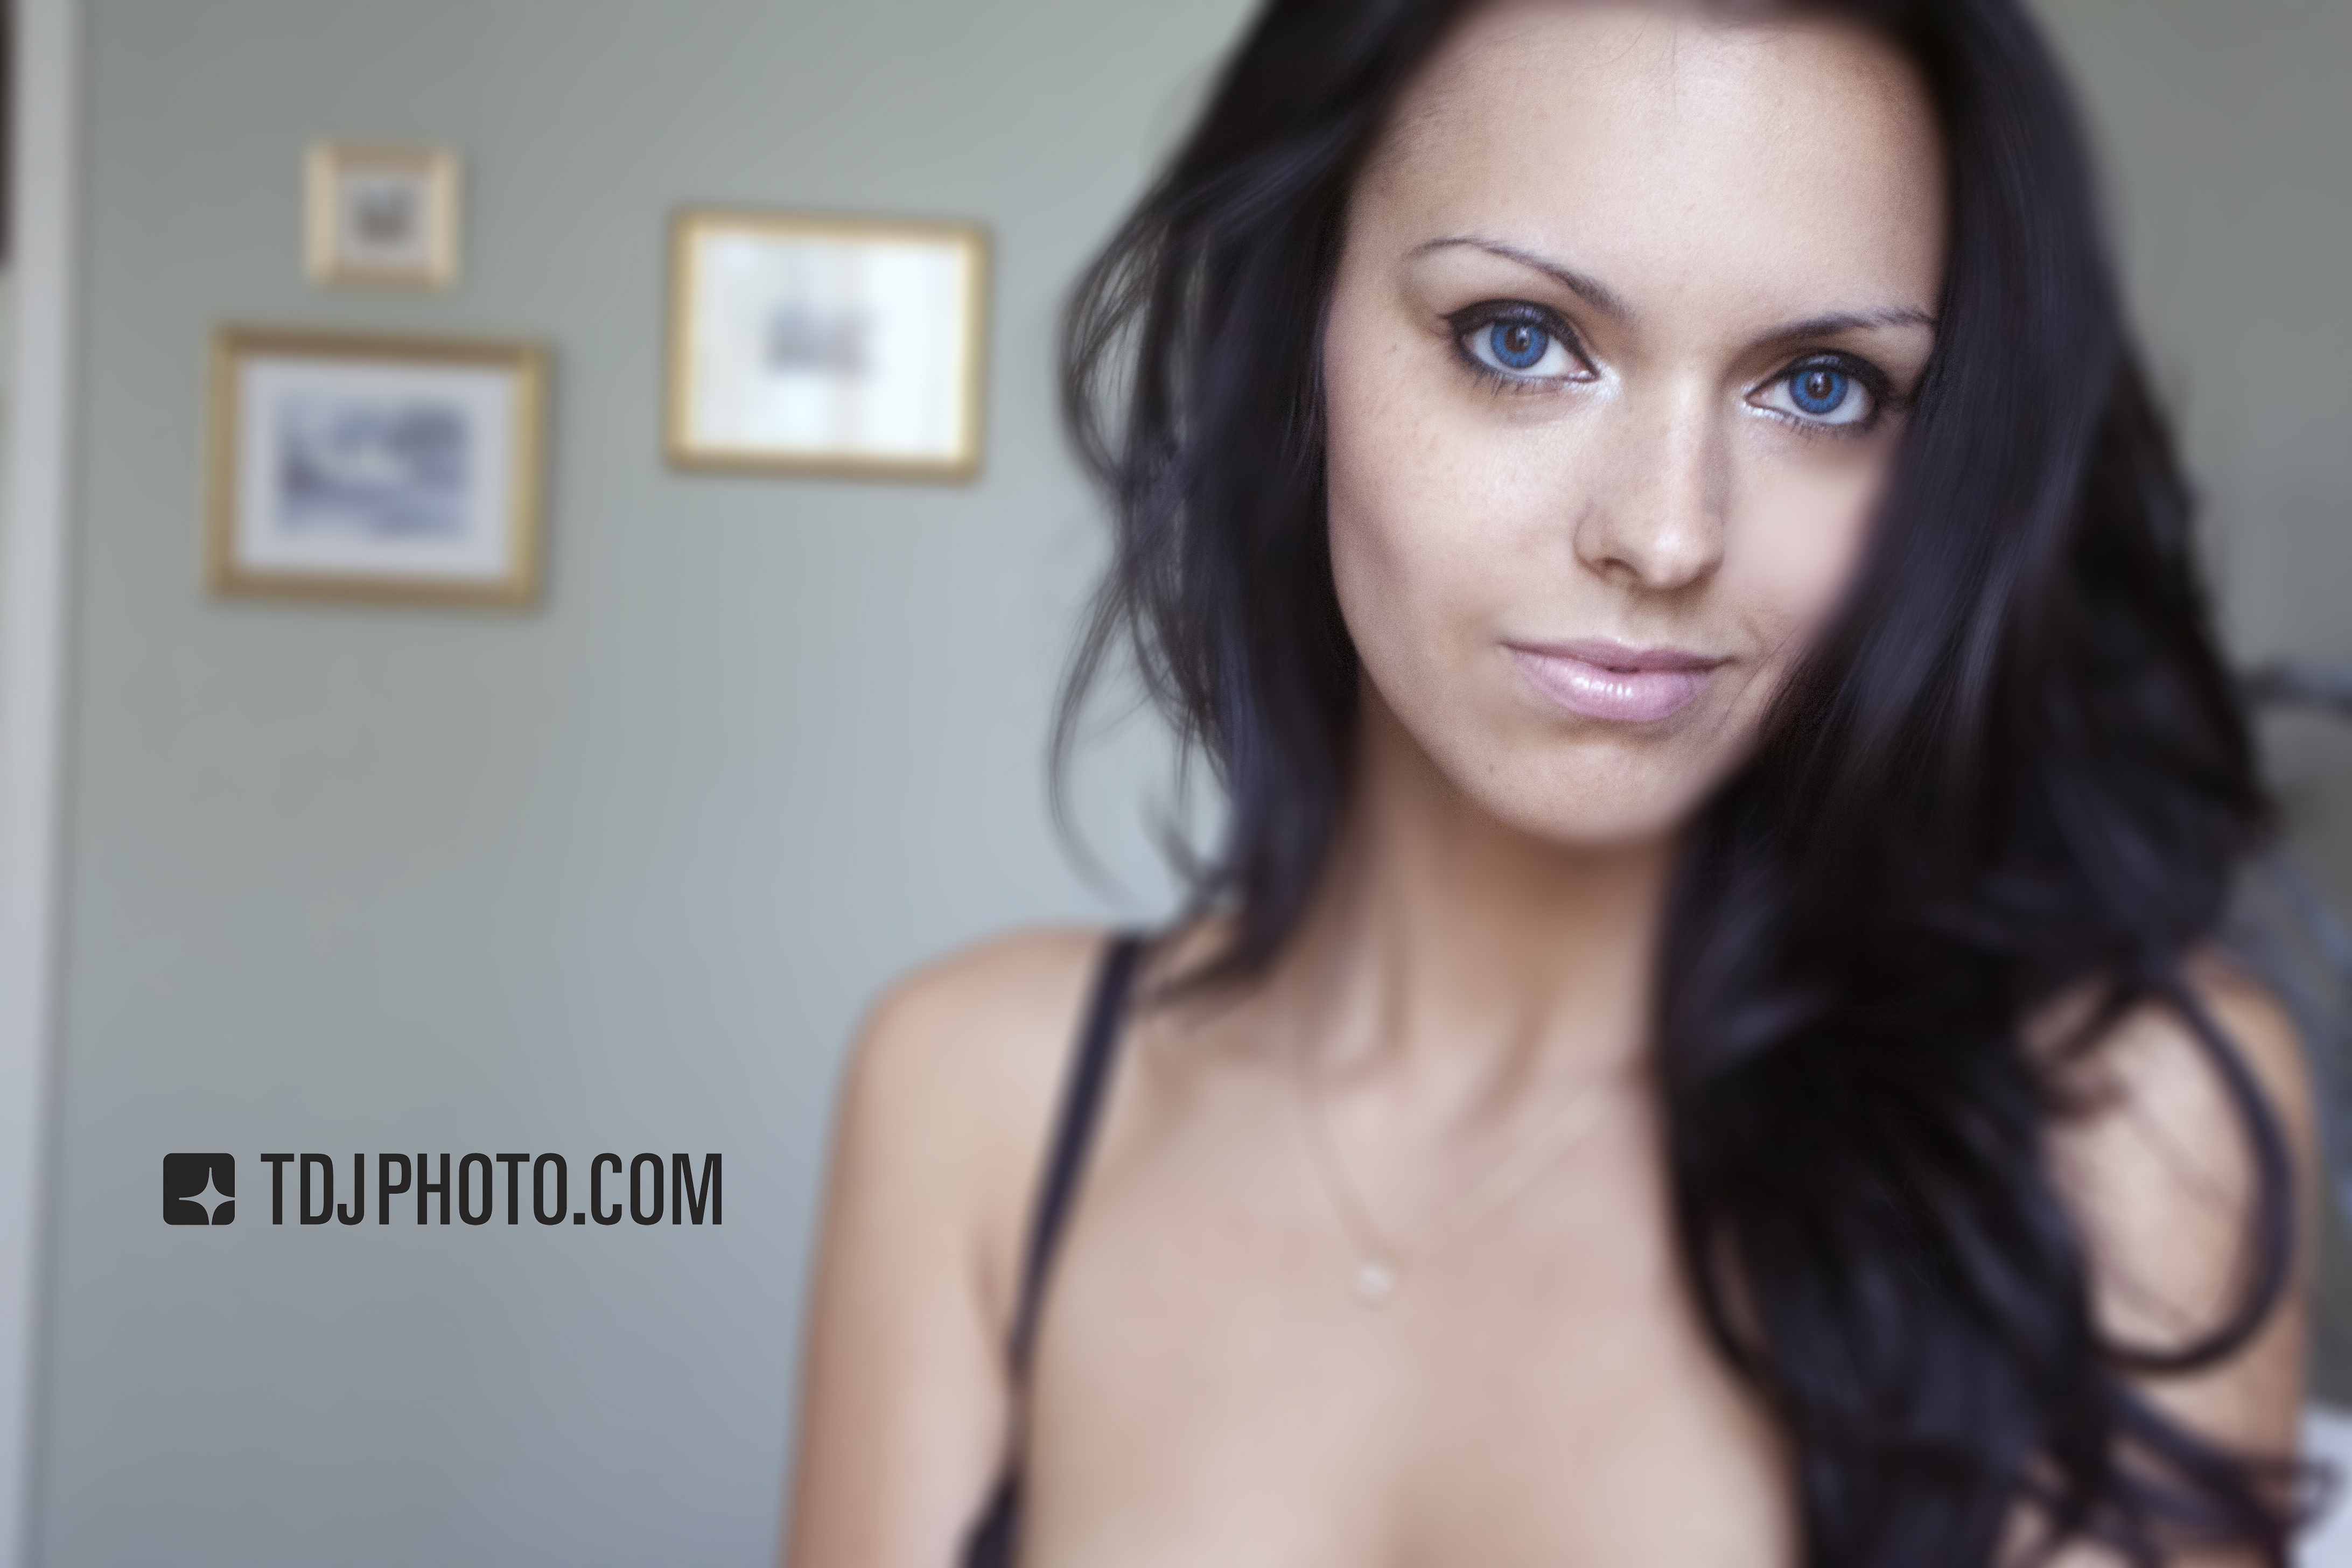 Chelsea dr phil nude pictures